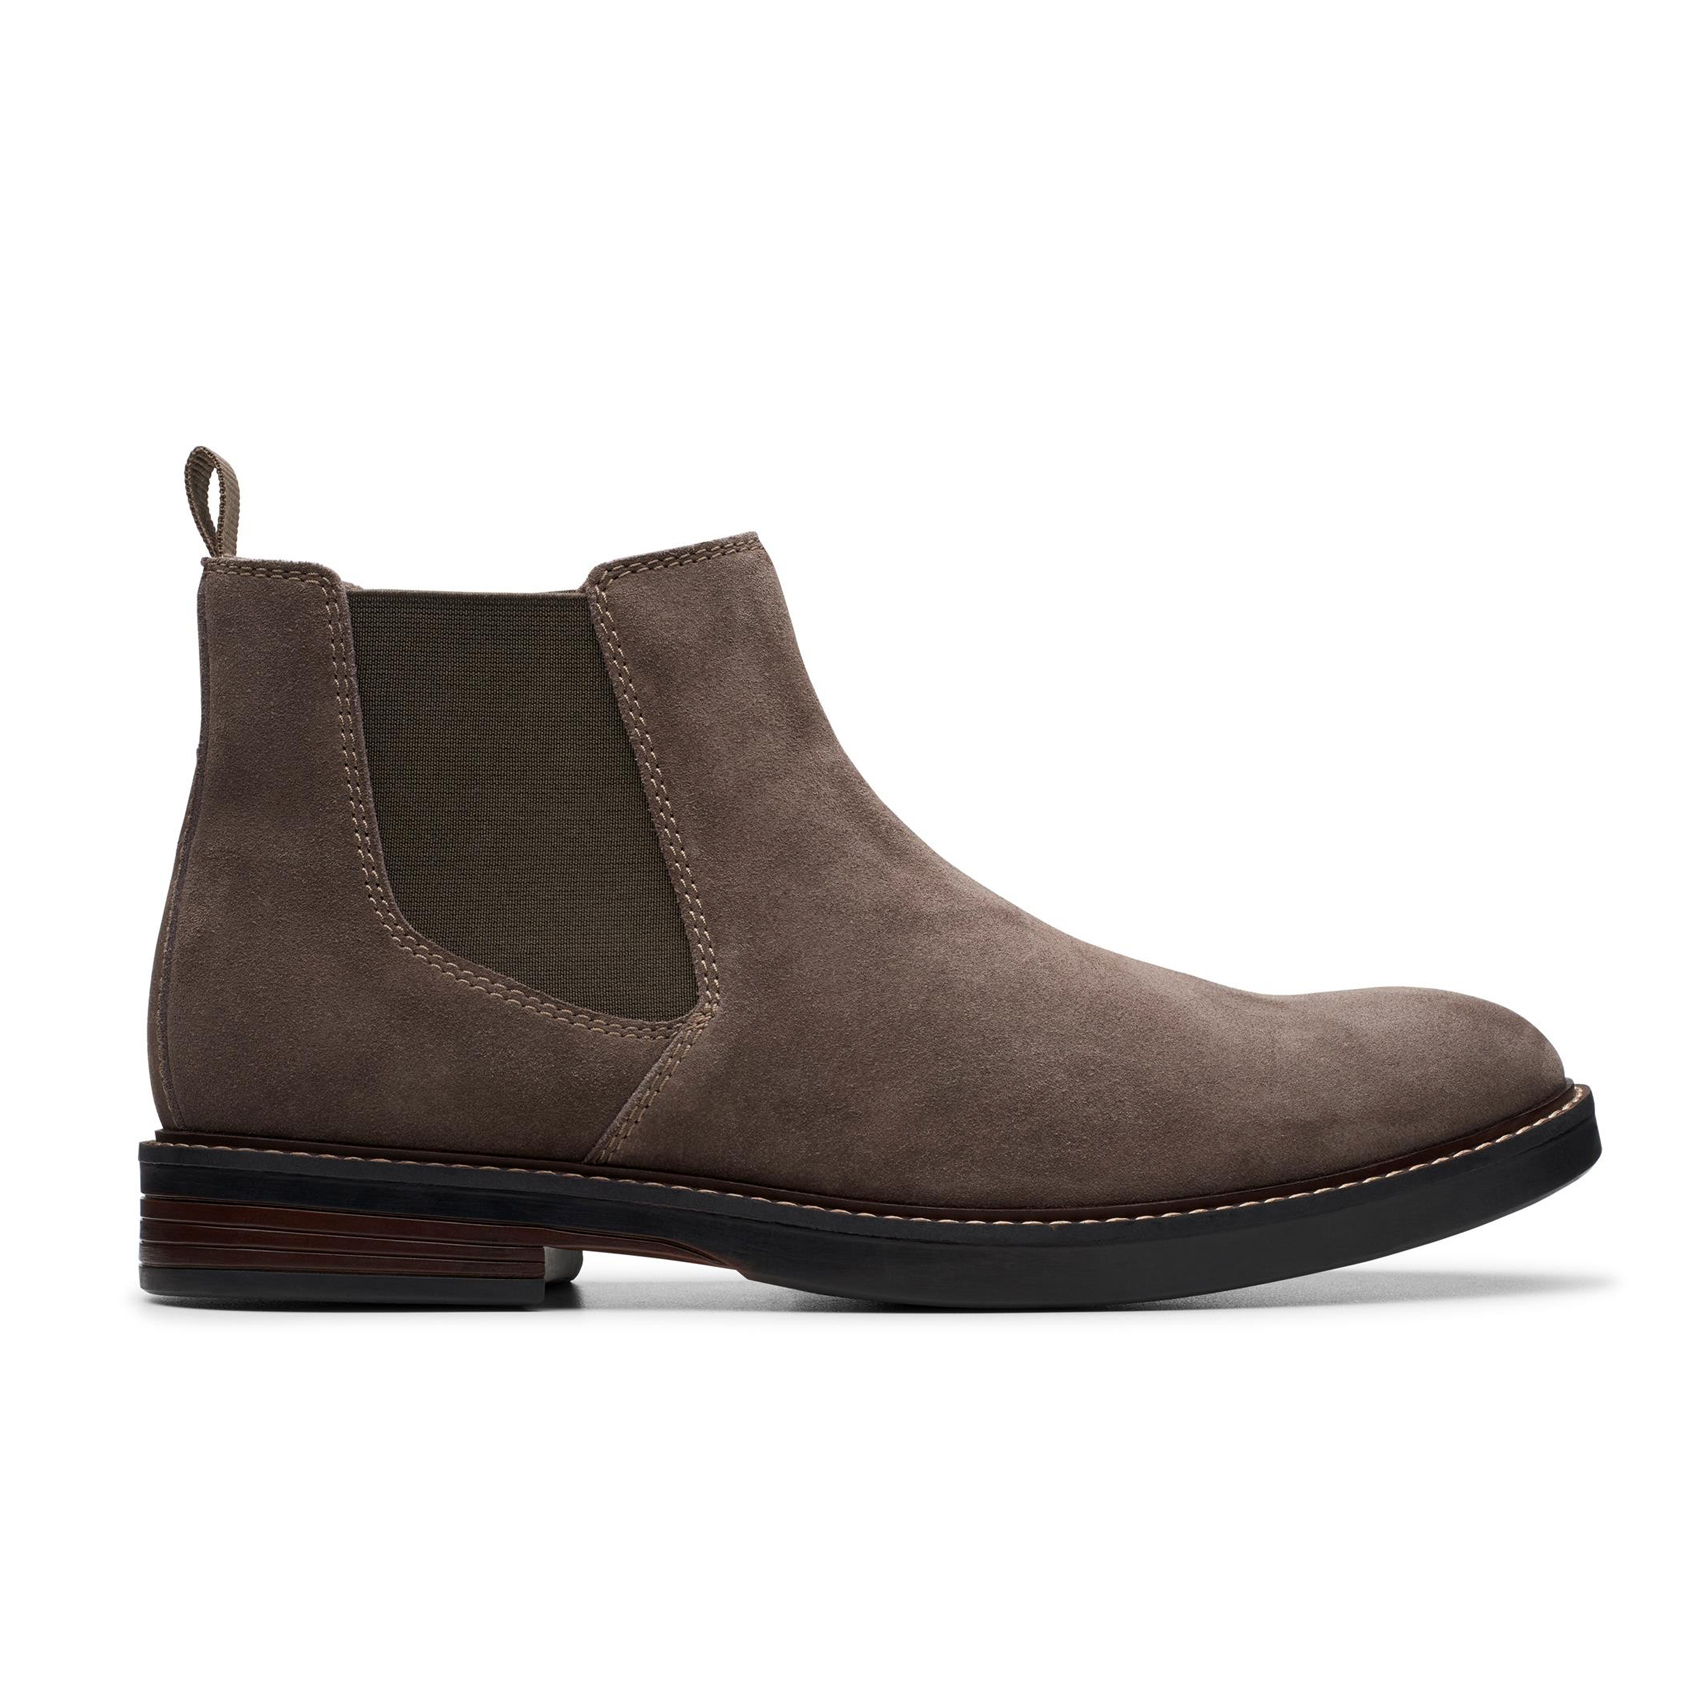 Stivaletto beatles taupe Clarks